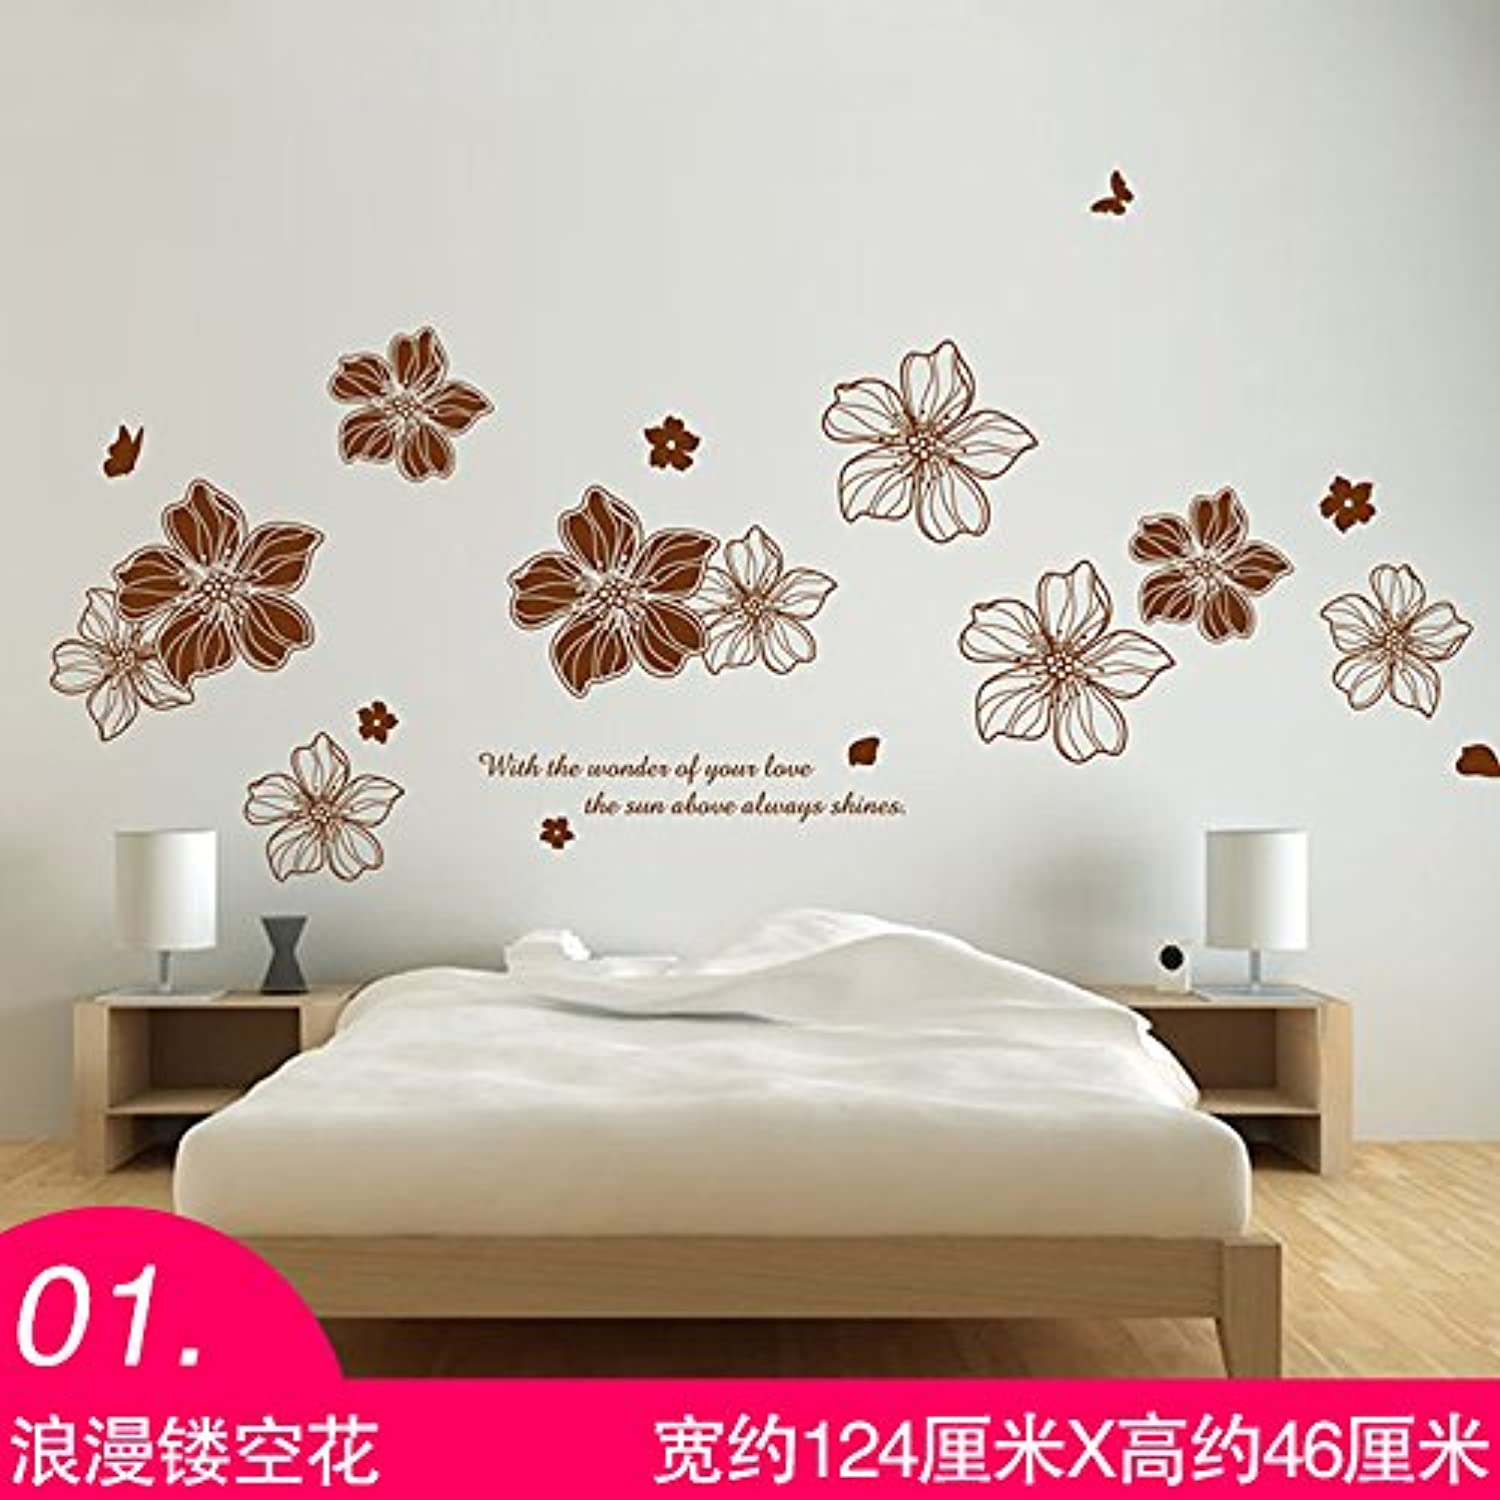 Znzbzt Bedroom Wall Sticker Art Wall Paper Wall Decoration 3D self Adhesive Wallpaper, Exposed Flower